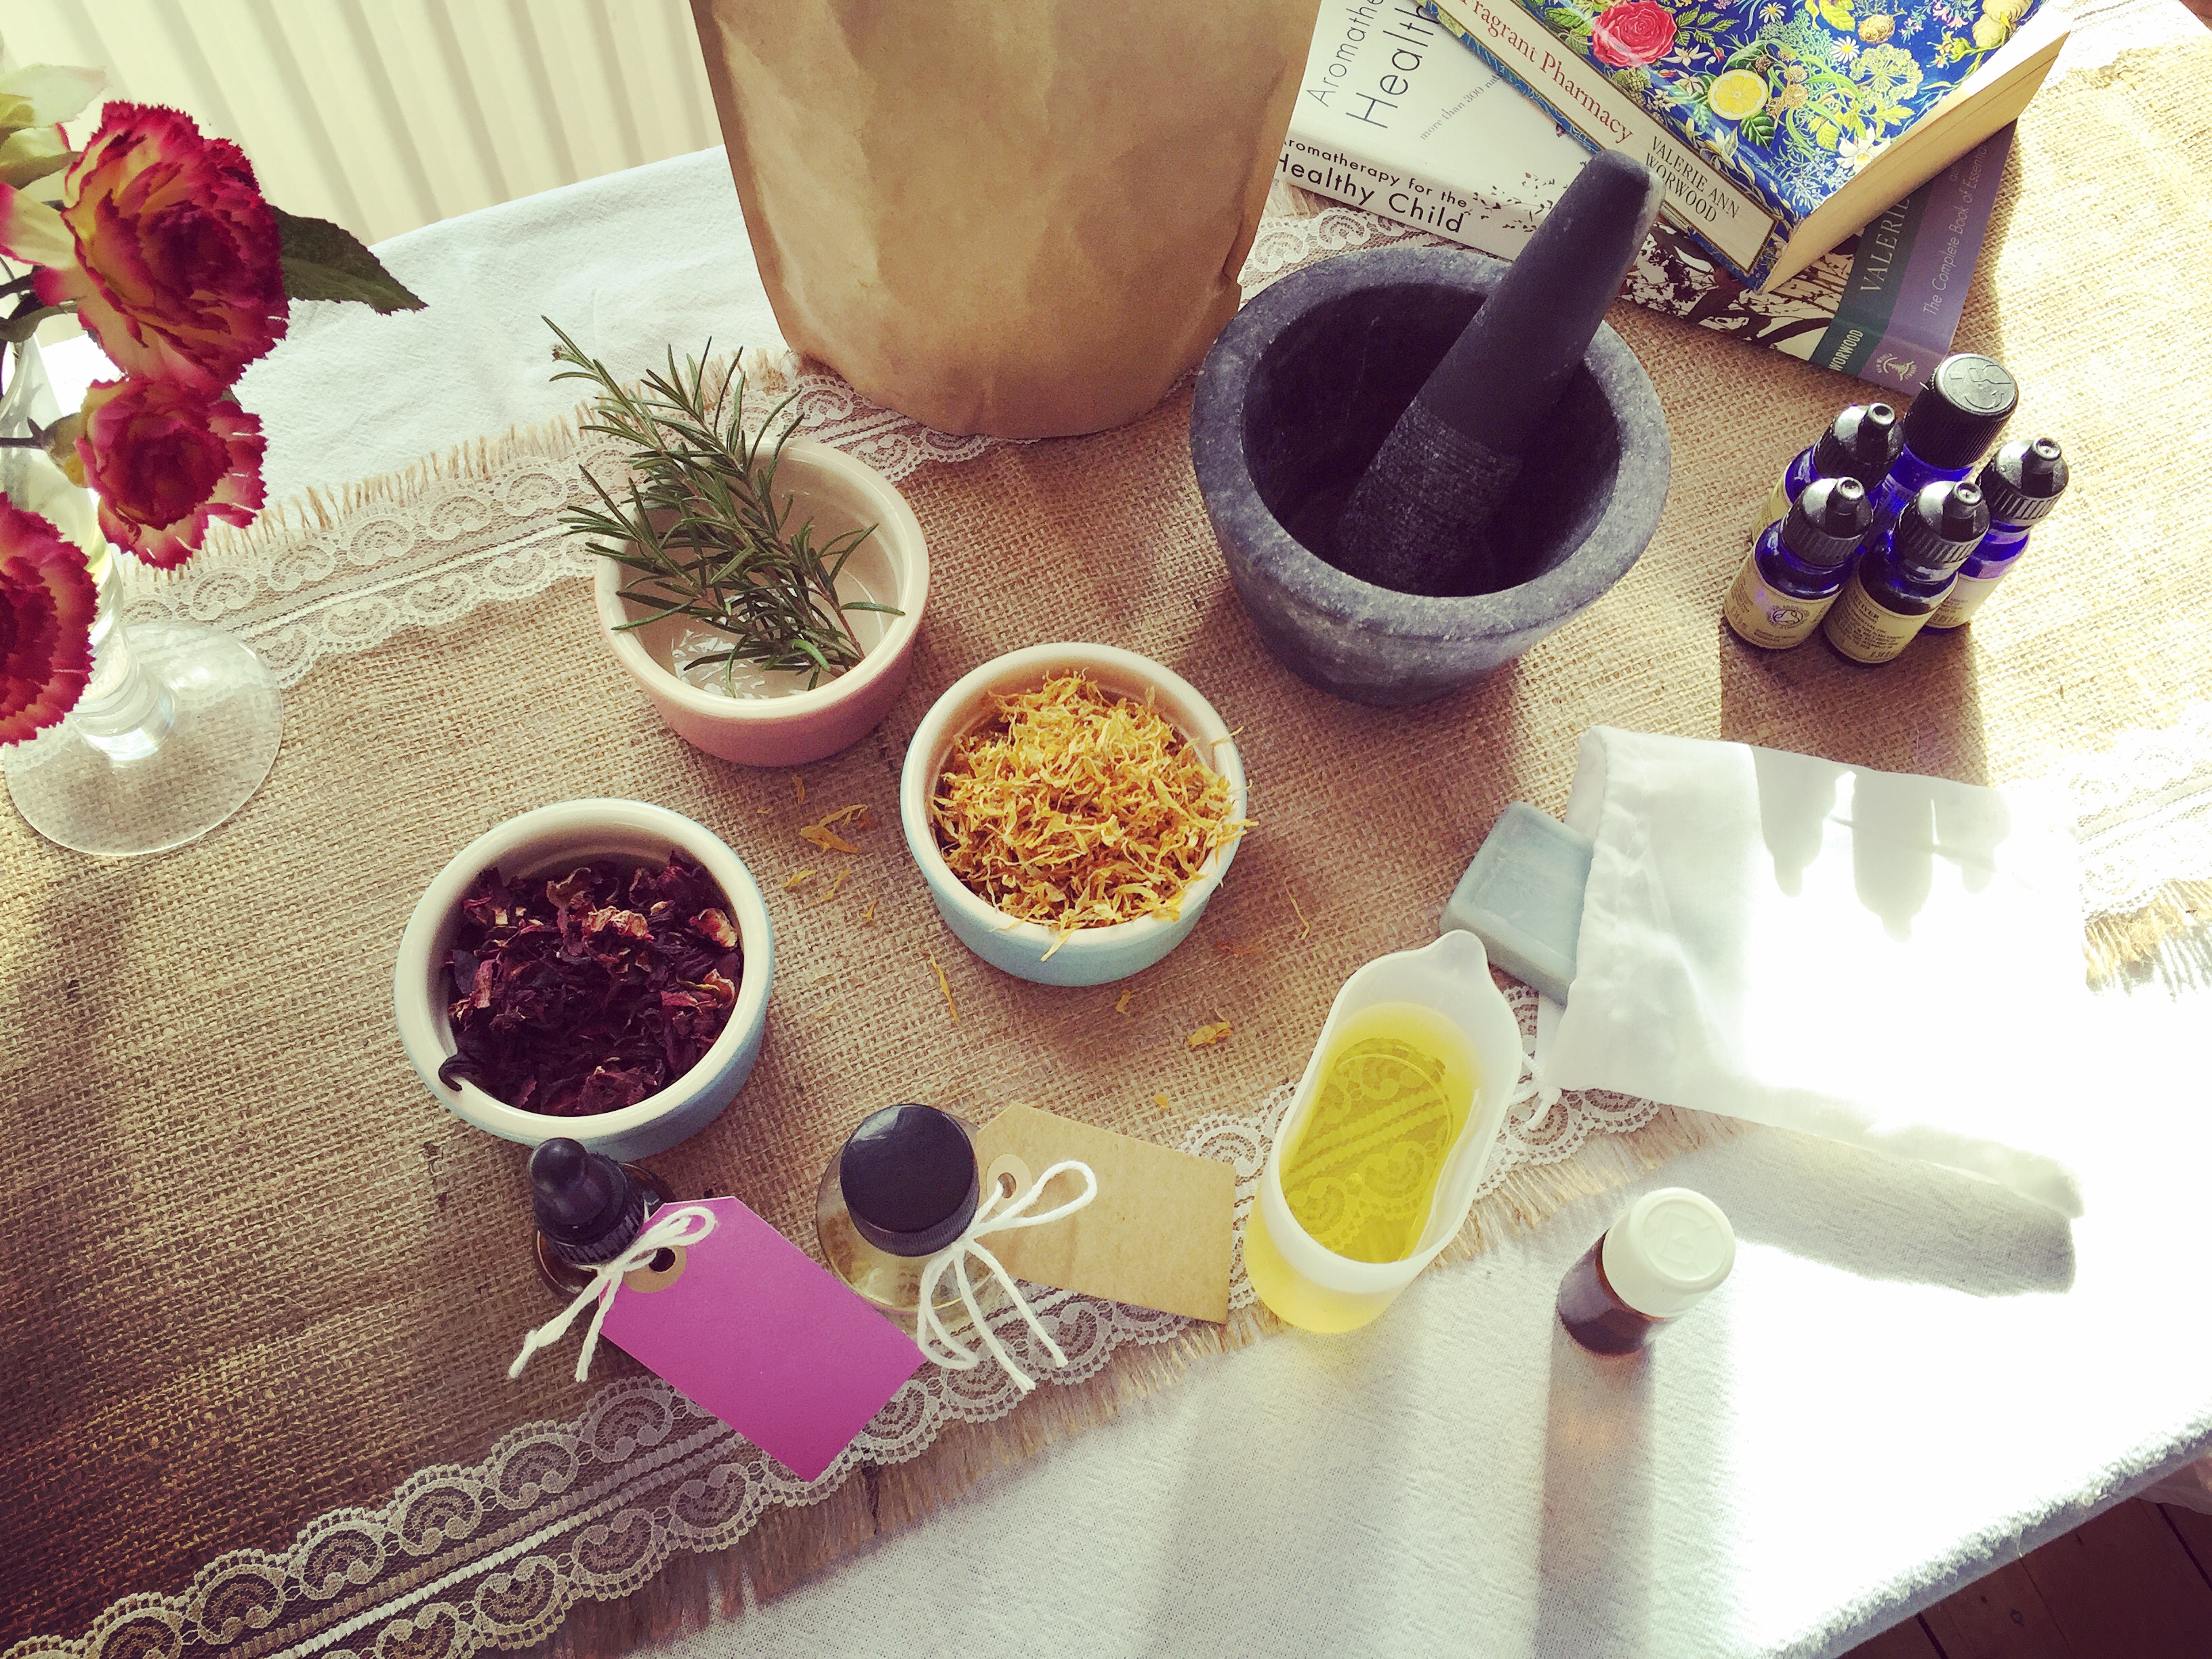 Lotions and Potions Private Workshop by Chamomile Lawn - health-and-beauty in London